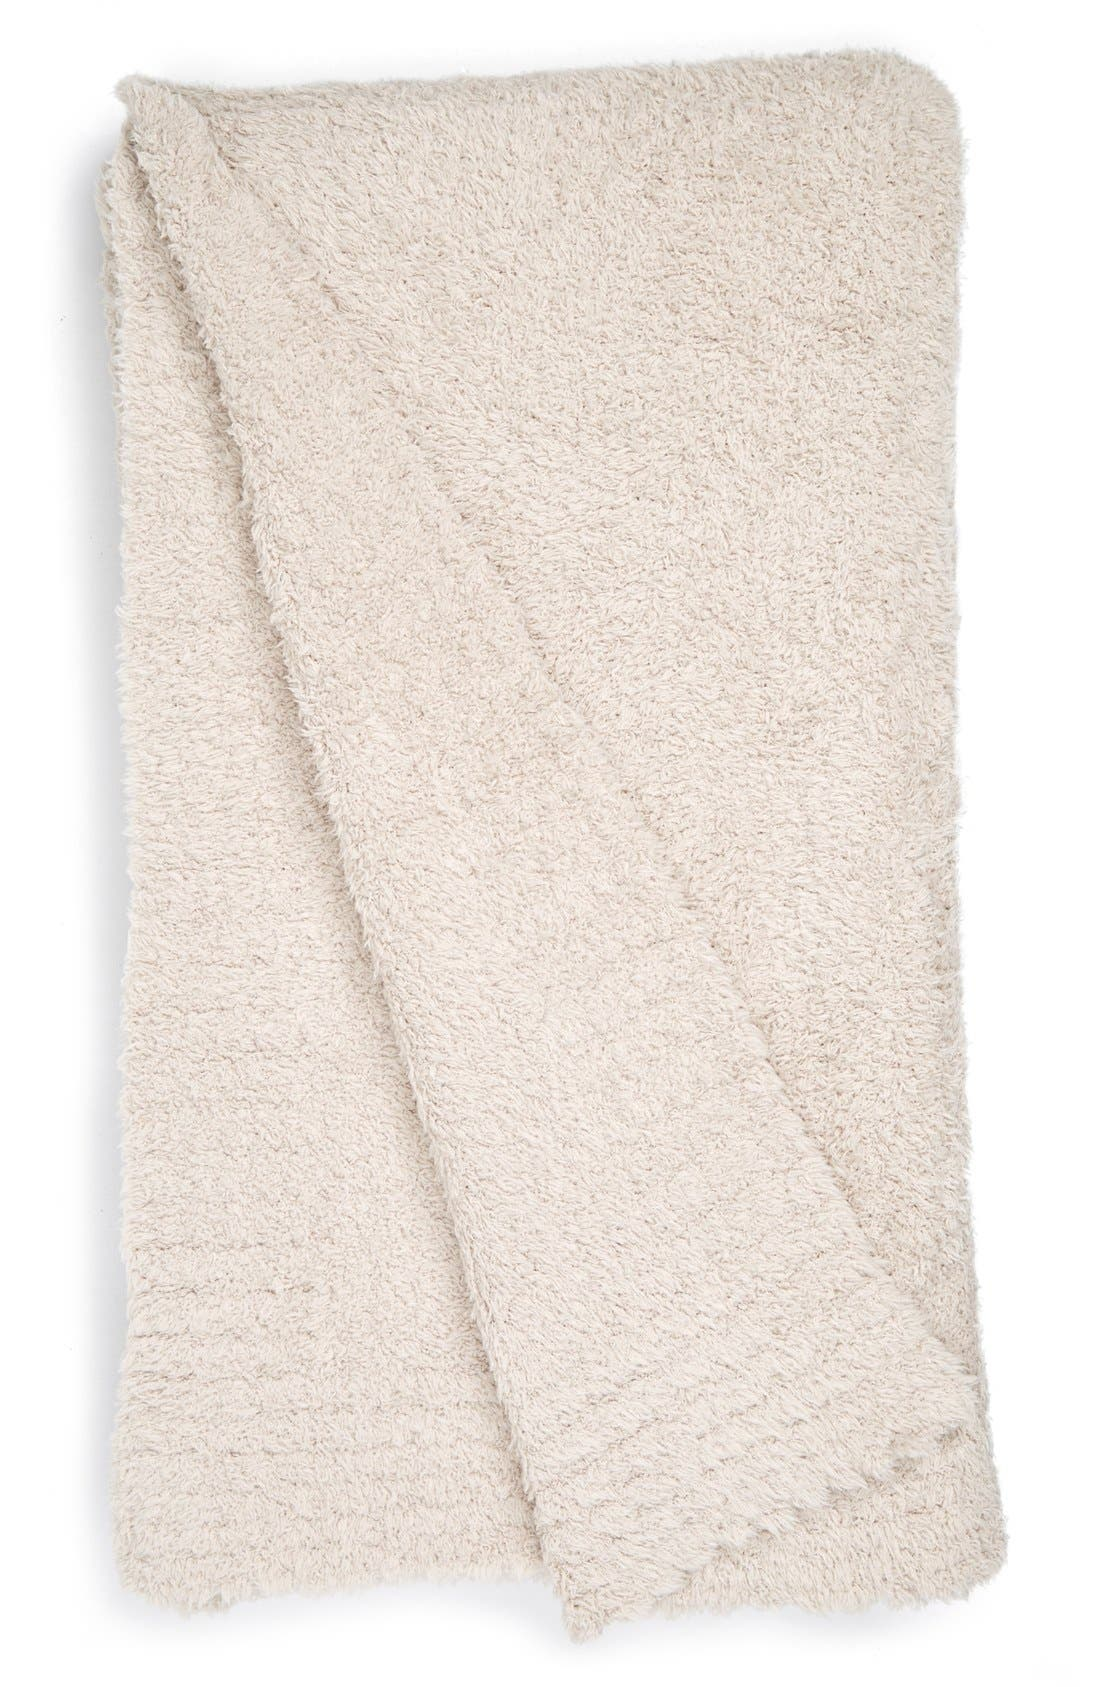 Alternate Image 1 Selected - Barefoot Dreams® Cozy Chic Throw